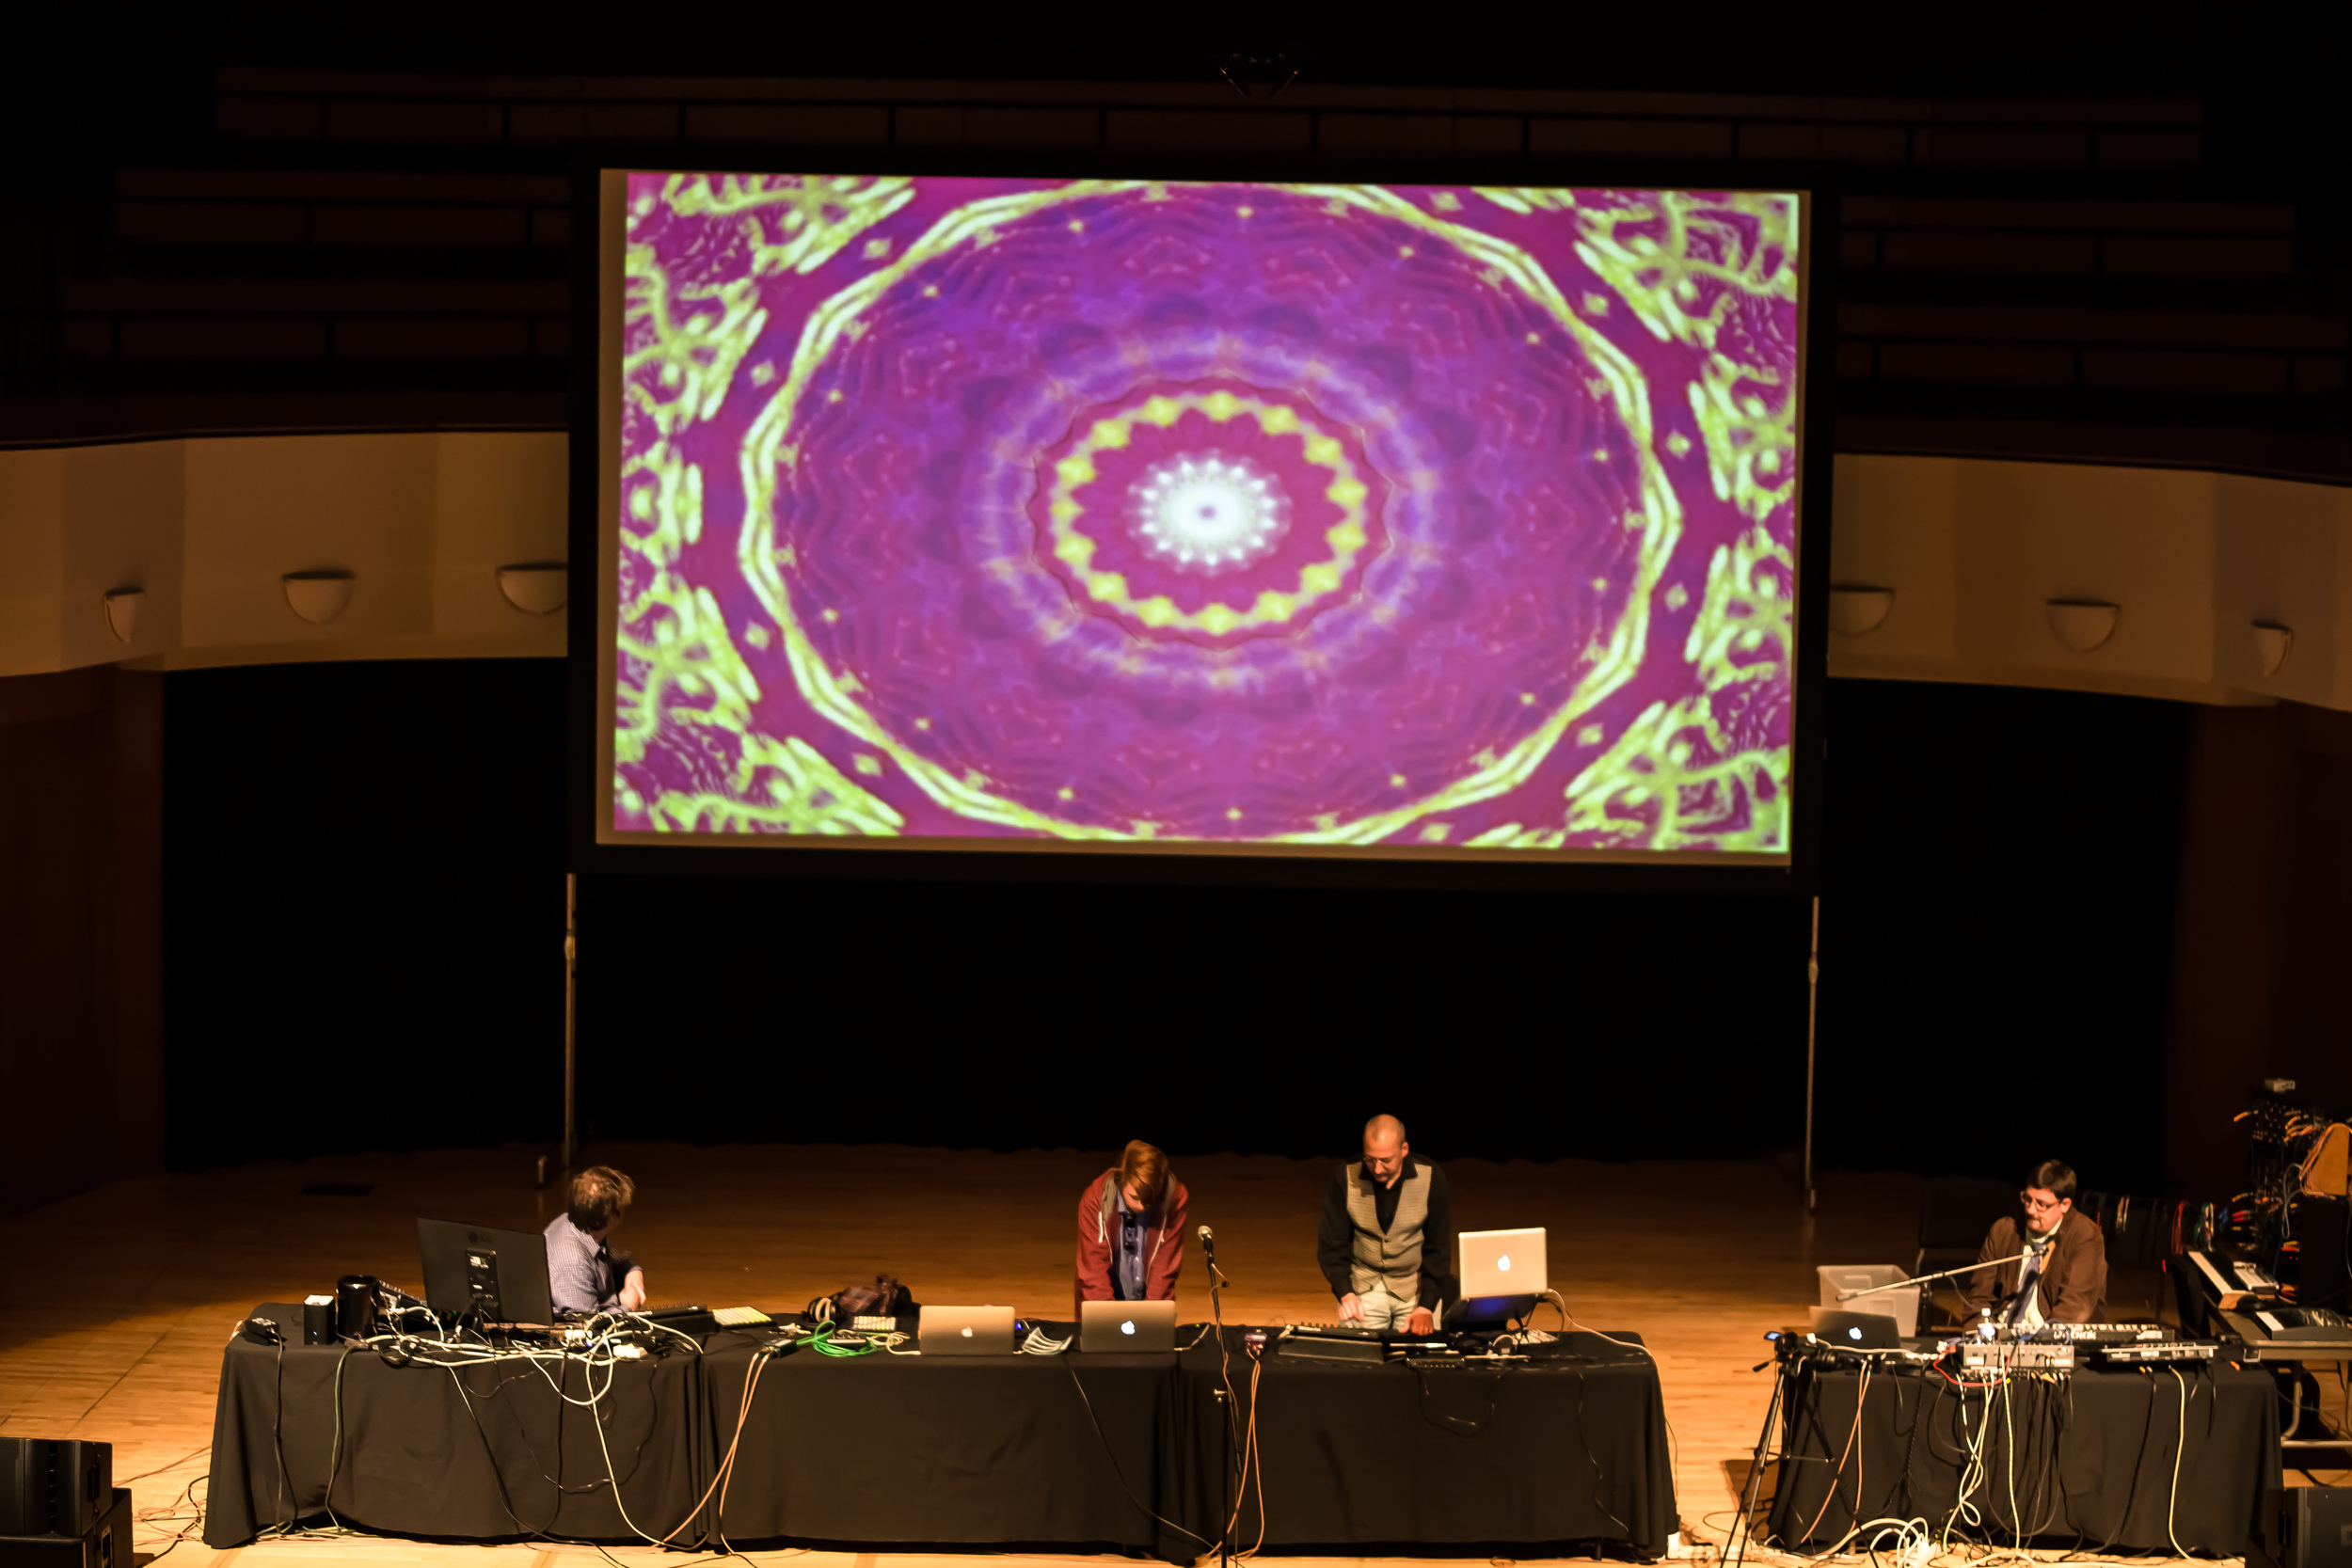 20150319_Art_Gallery_Iron_Pour_Lecture_Electronicatopia_0533.jpg